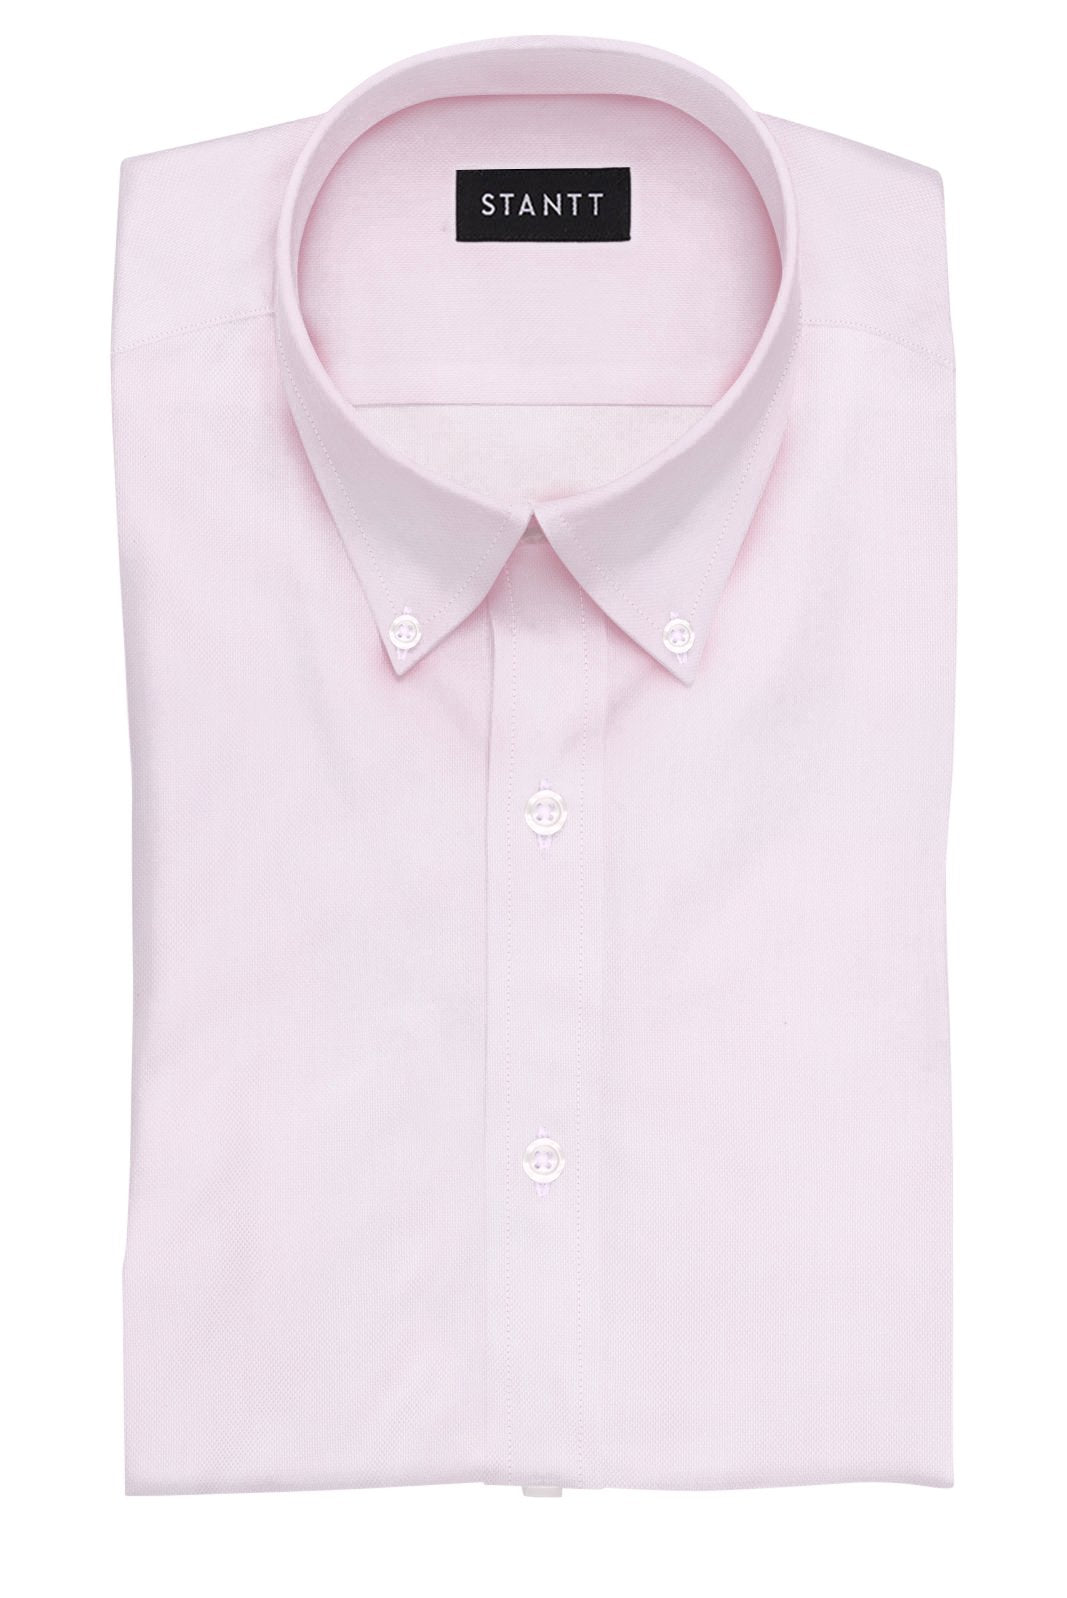 Pink Royal Oxford: Button-Down Collar, Barrel Cuff